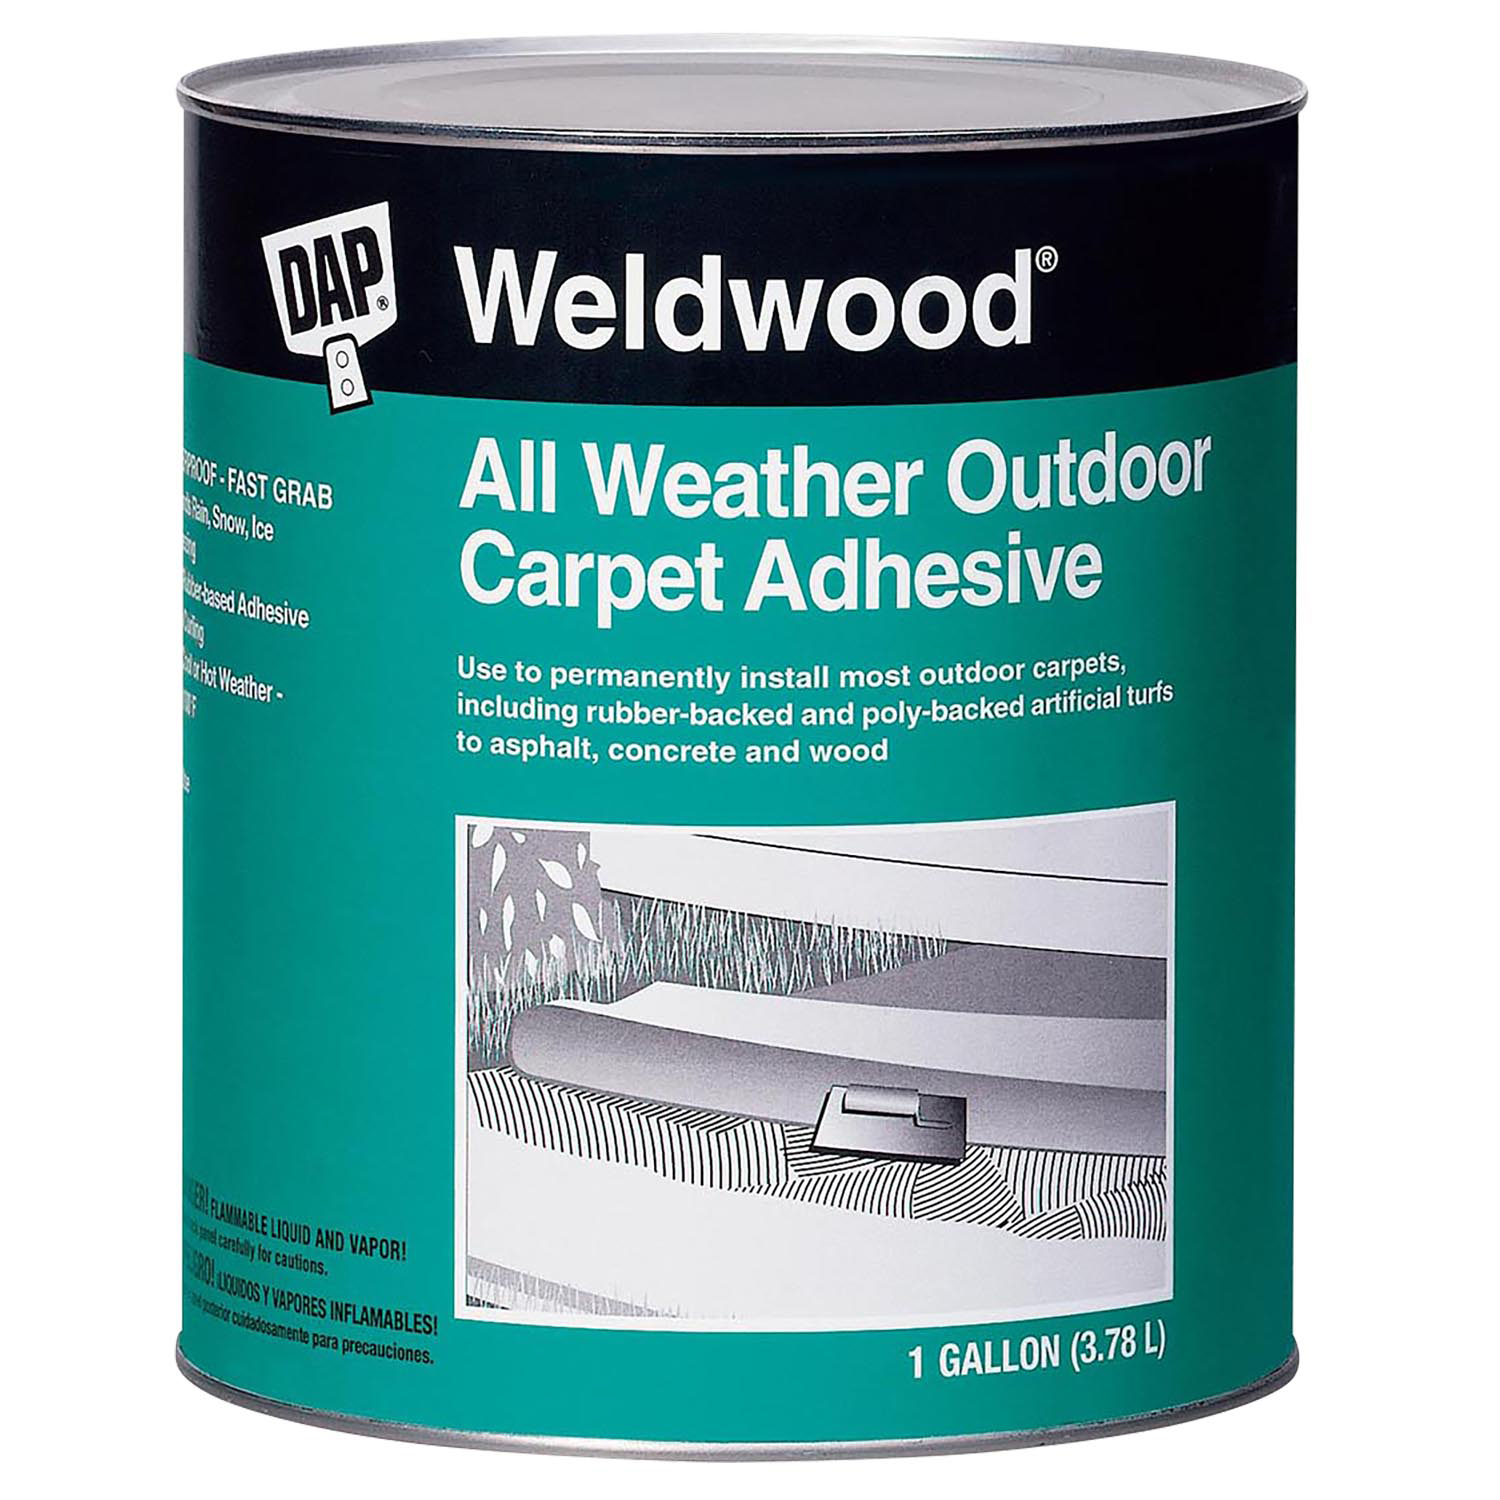 Weldwood All Weather Outdoor Carpet, How To Adhere Outdoor Carpet Concrete